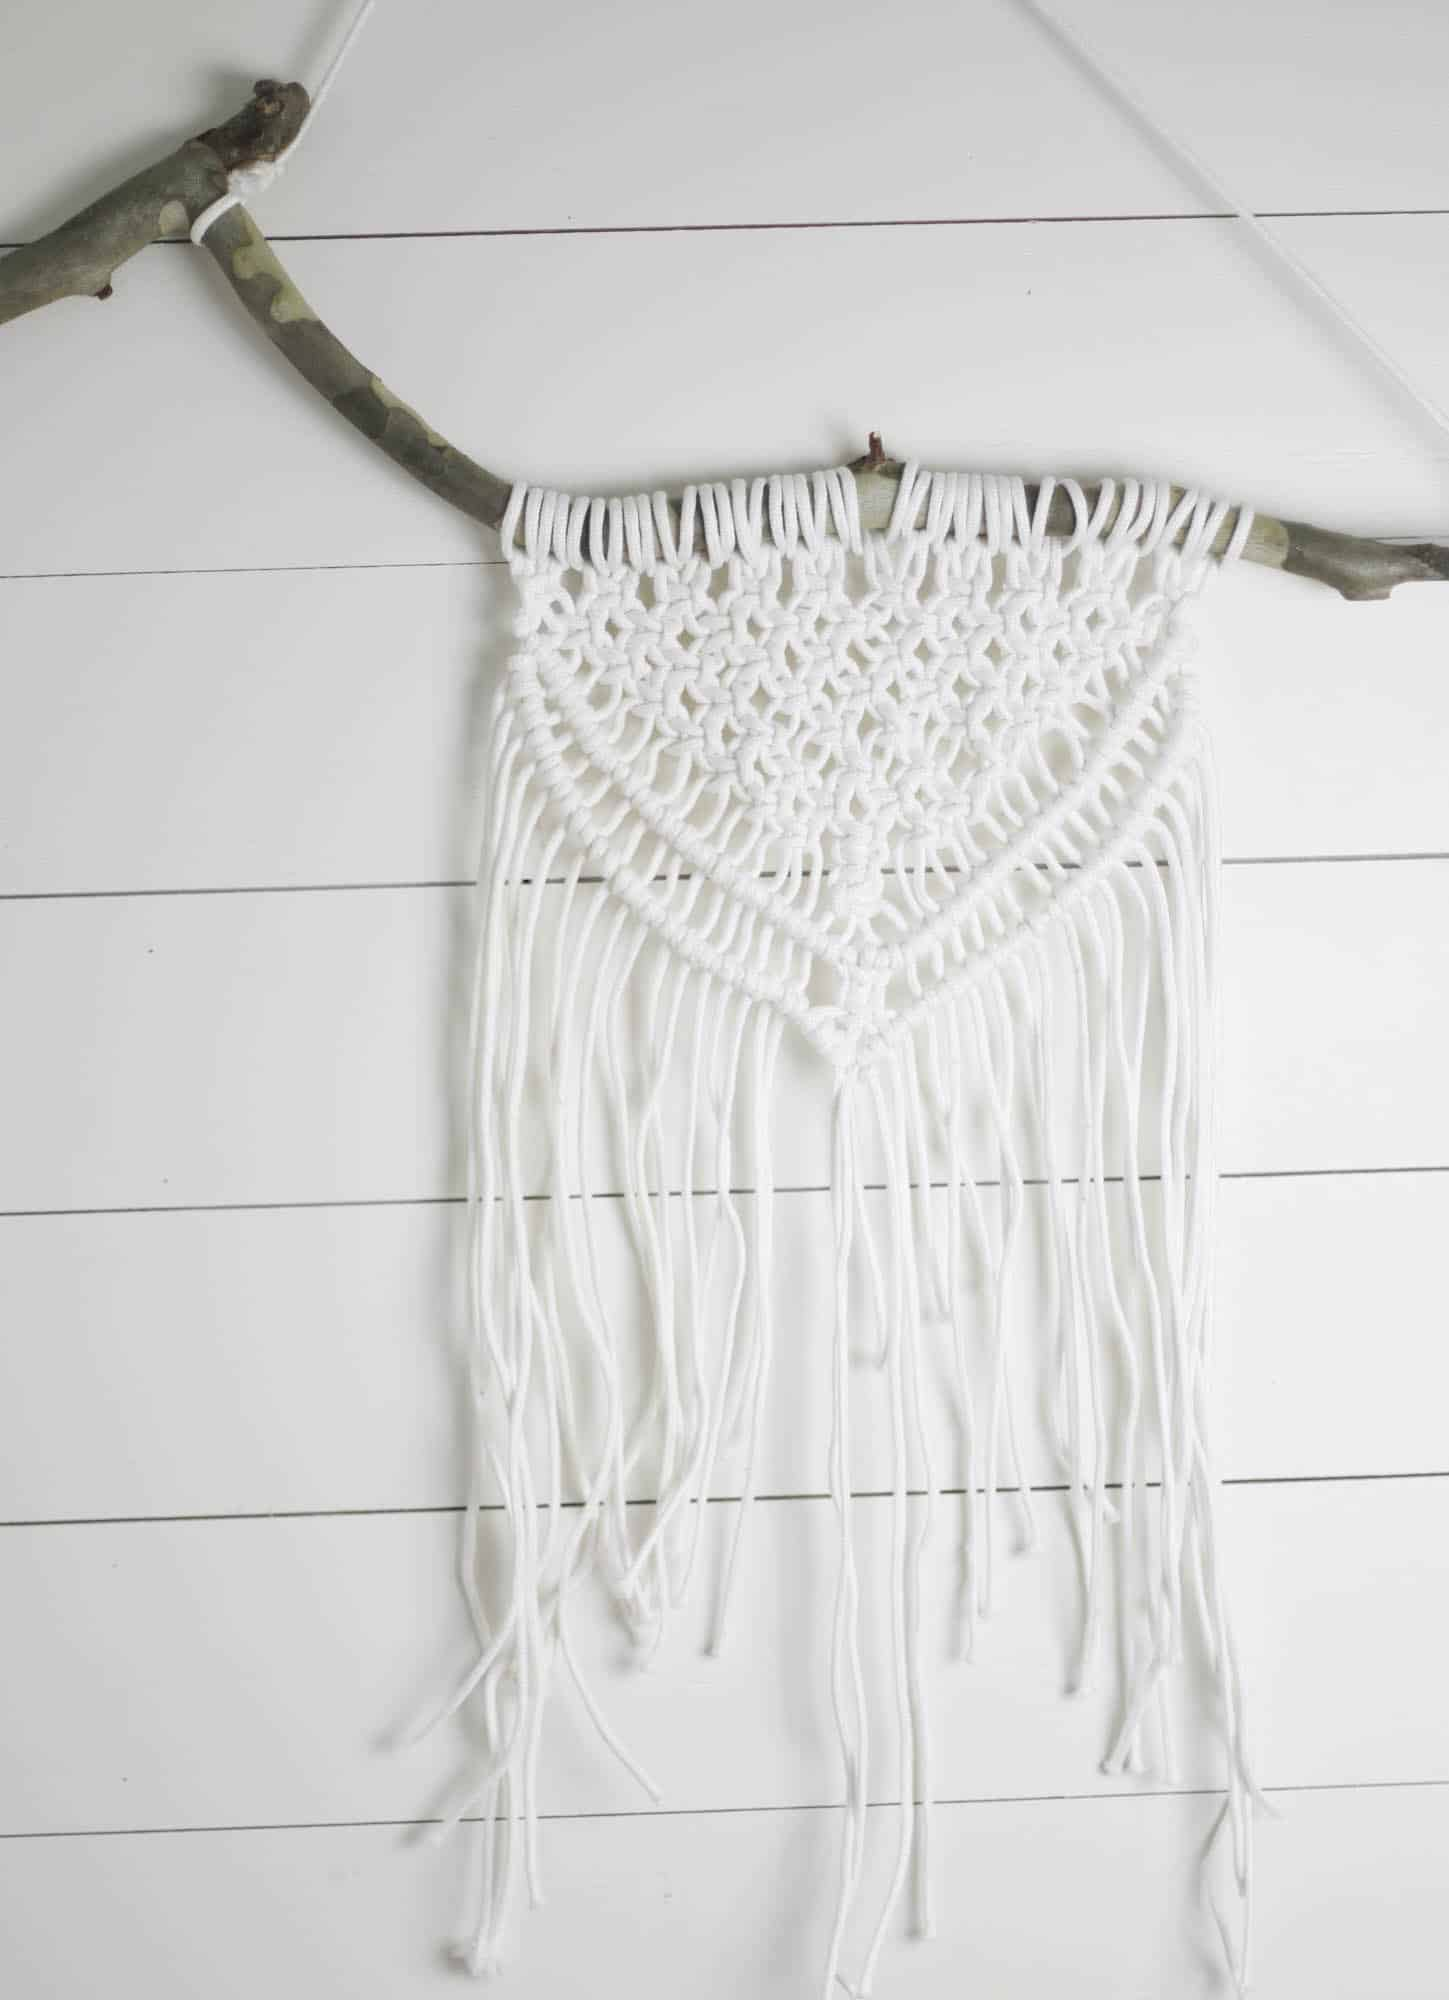 Macrame Wall Hanging DIY Tutorial with Video